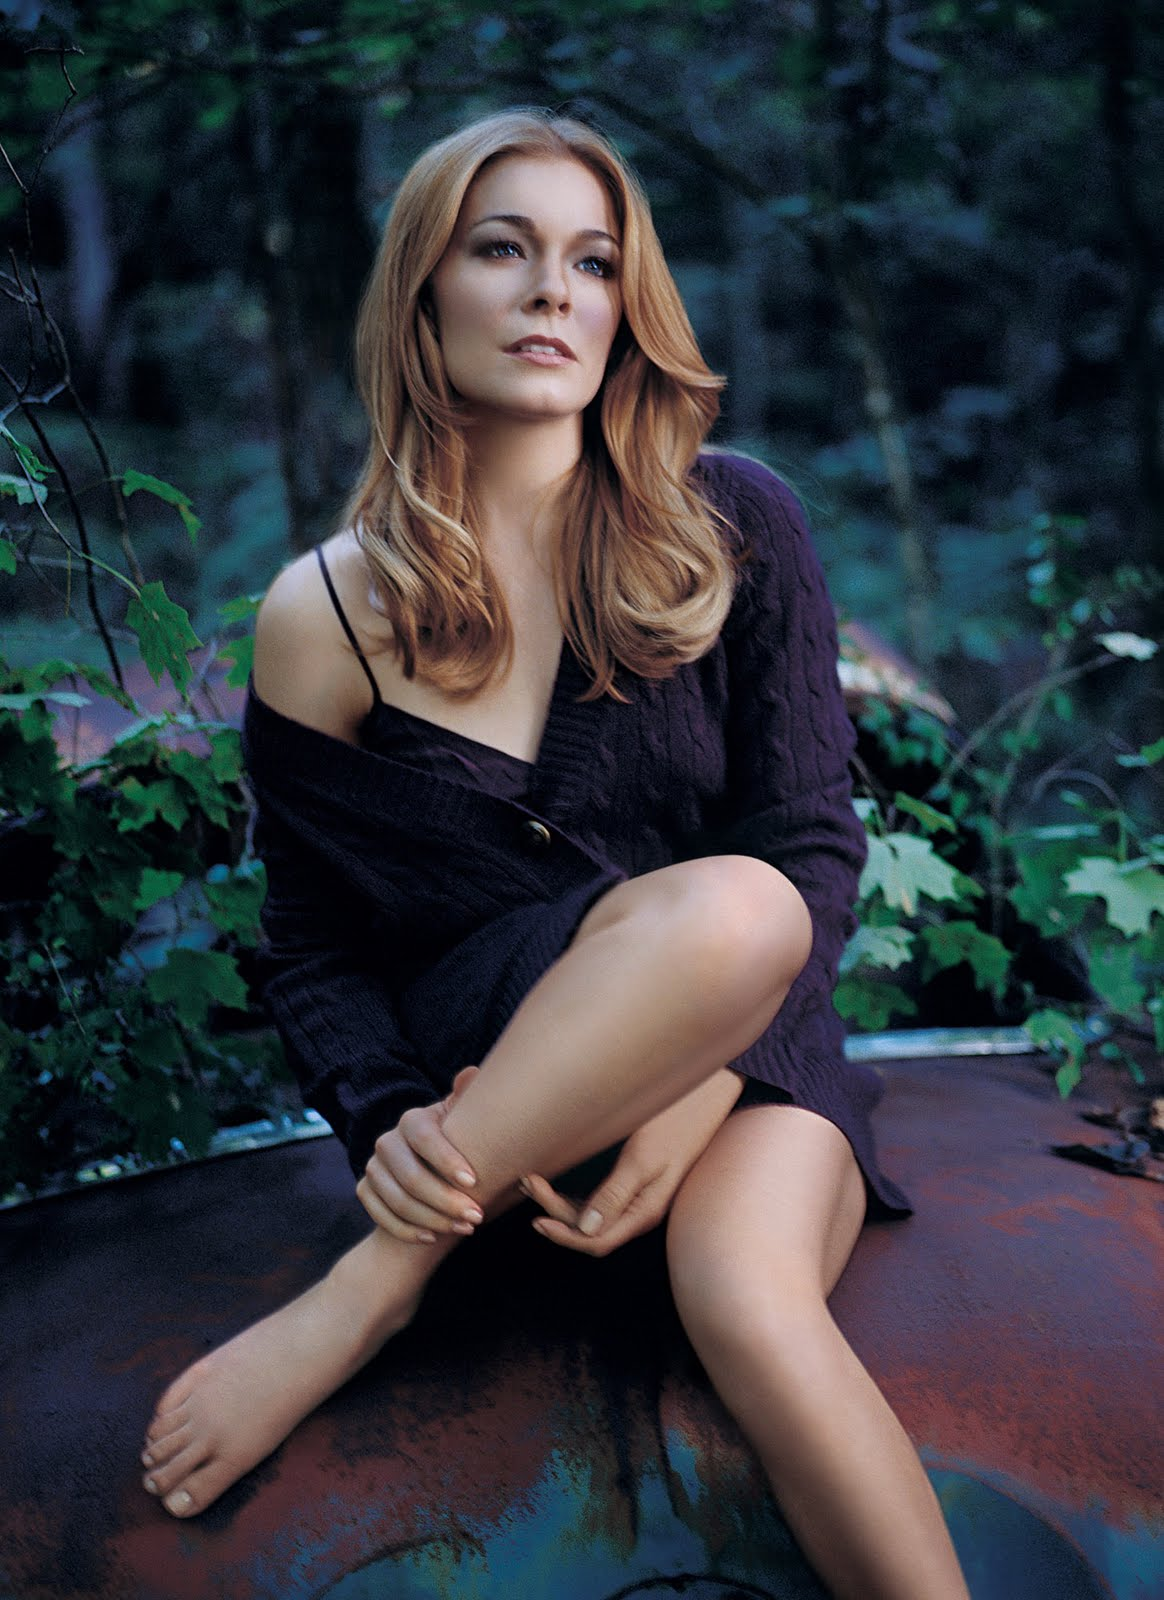 Feet Madchen Amick naked (32 foto and video), Tits, Sideboobs, Boobs, braless 2015